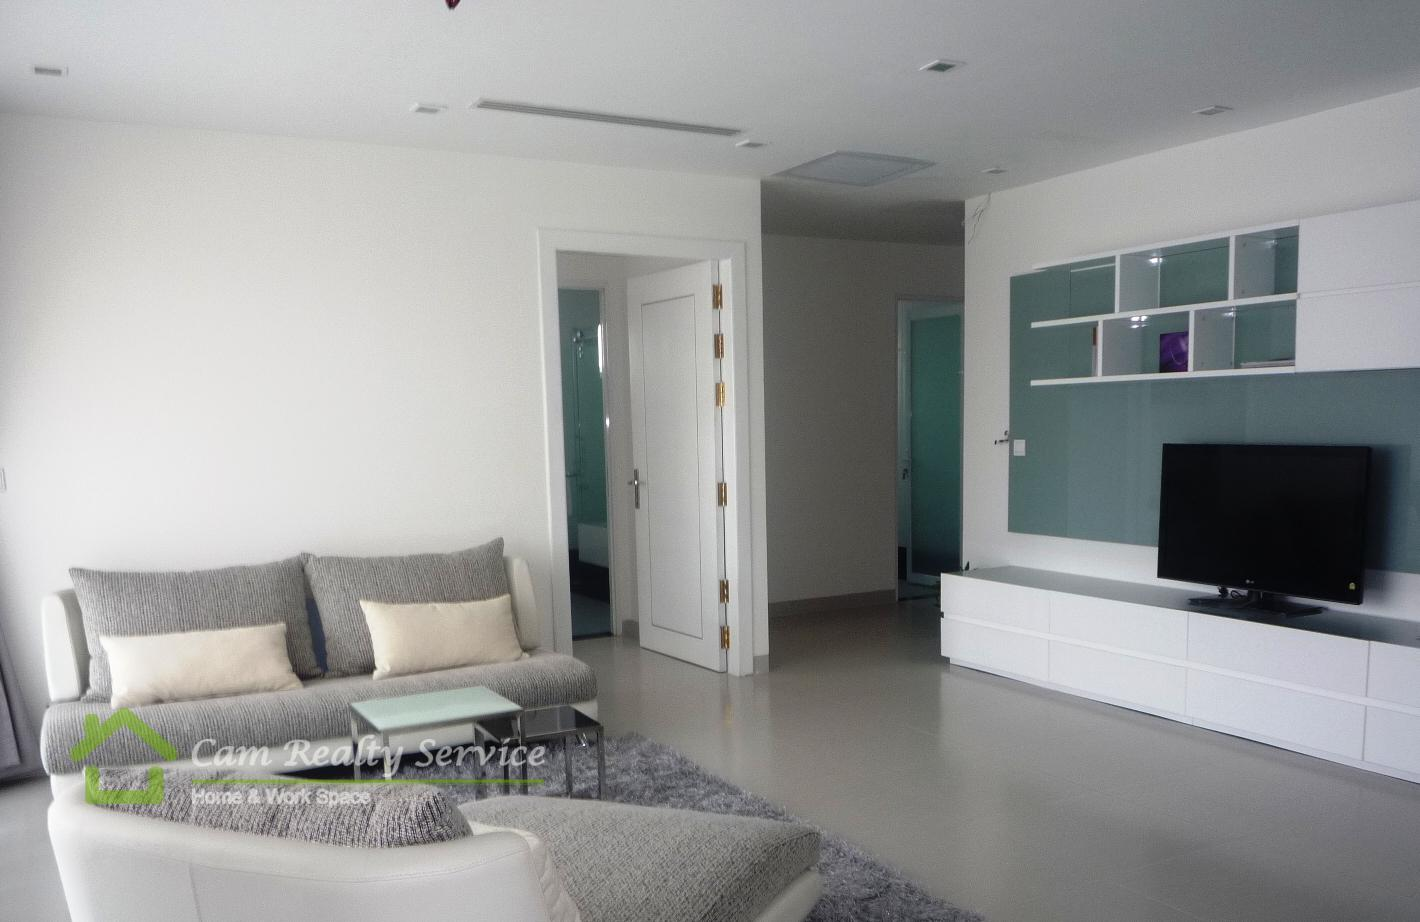 BKK1 area| Modern western style 3 bedrooms serviced apartment available for rent| 3000$/month| Rooftop pool & Gym